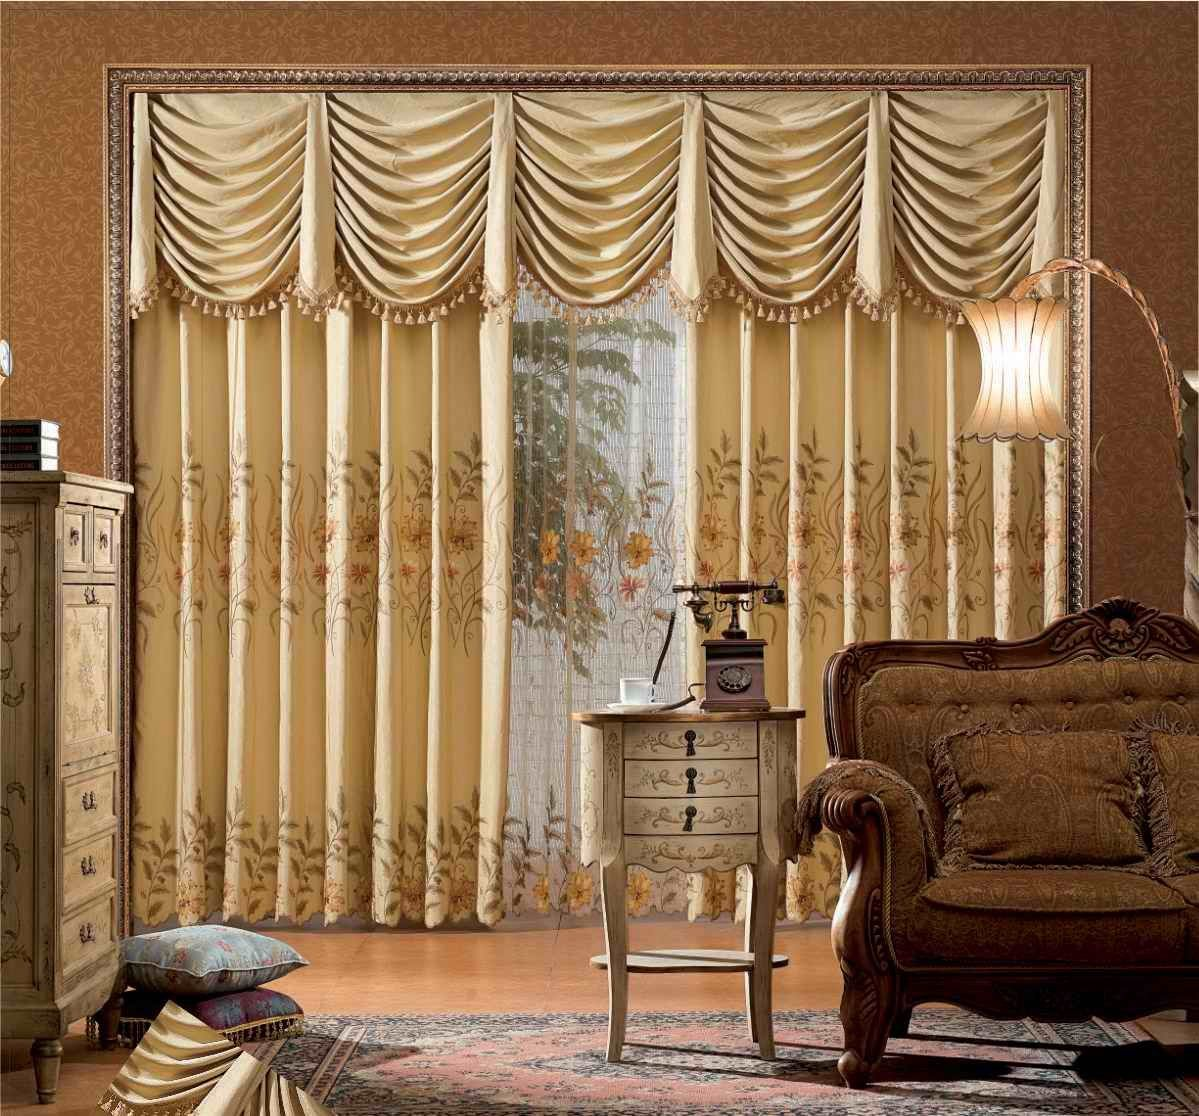 Living Room Curtains Design Custom Make Modern Living Room Curtains  Httphighlifestylewp Decorating Design